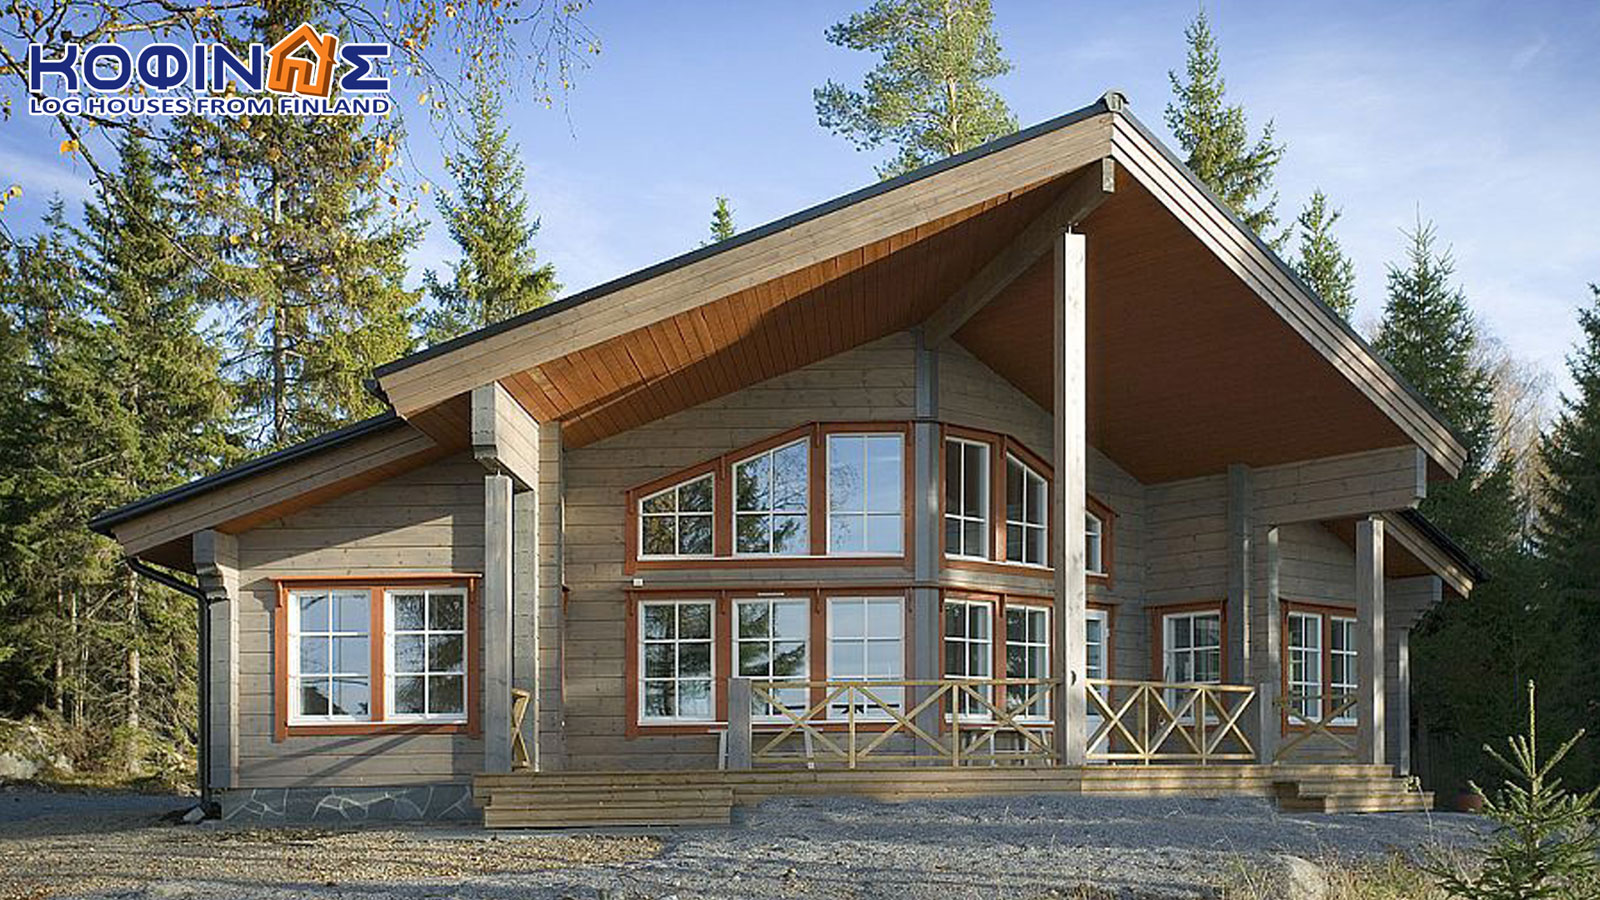 1-story log house XI-86, total surface of 86,70 m²